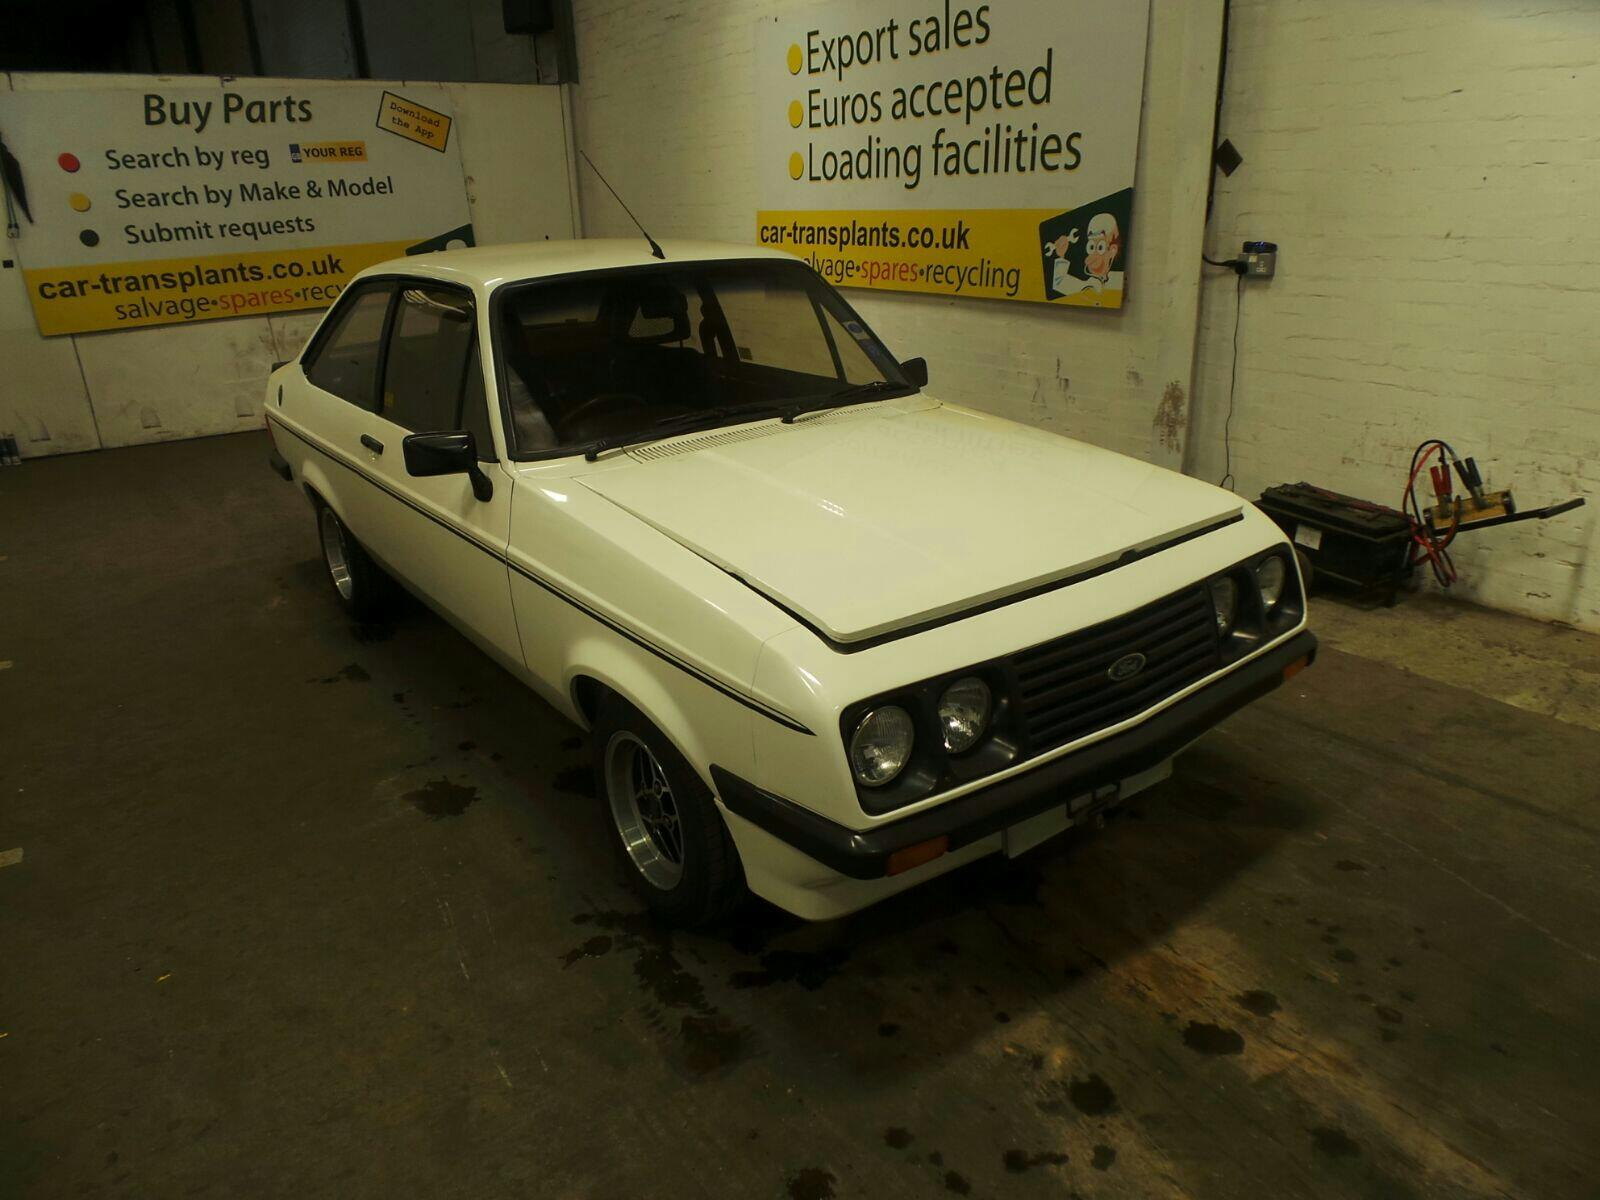 1979 Ford Escort 2 Door Saloon